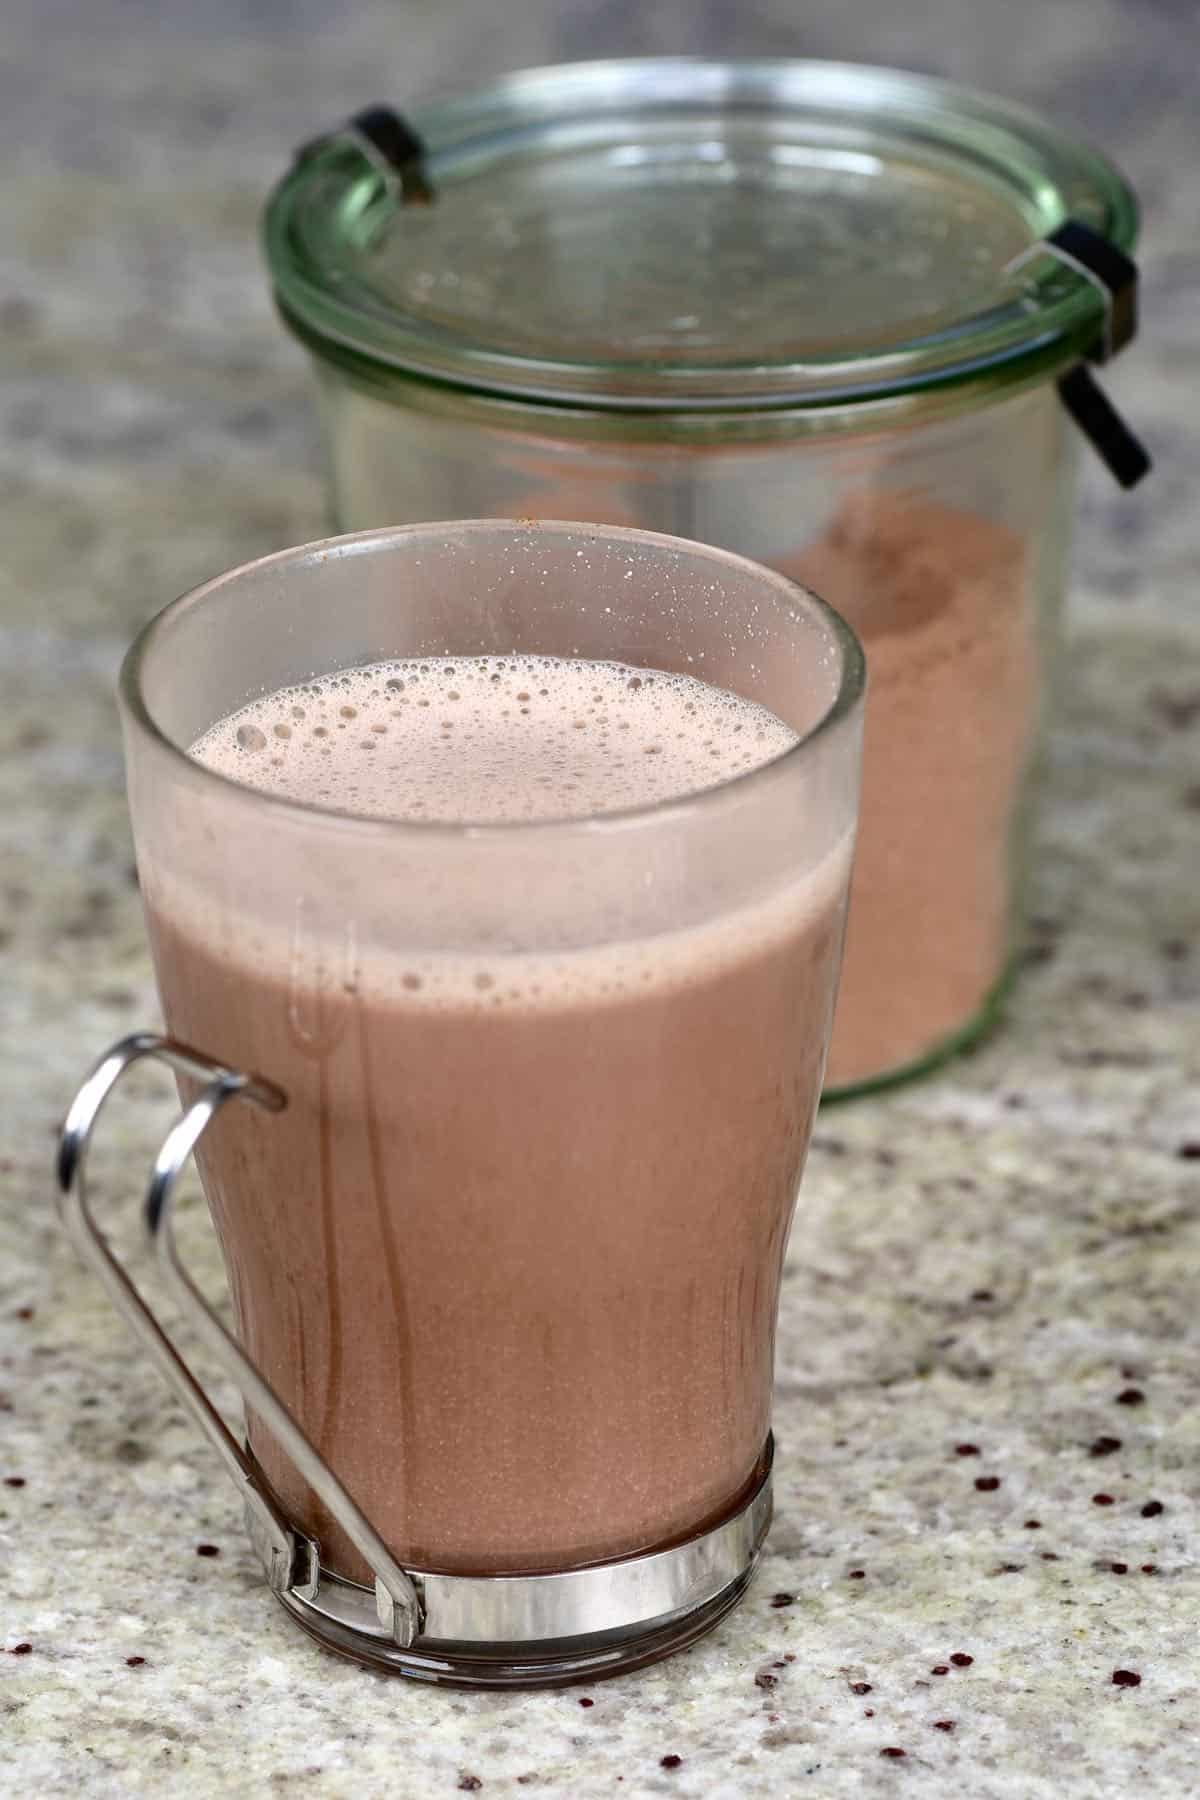 A glass with hot chocolate